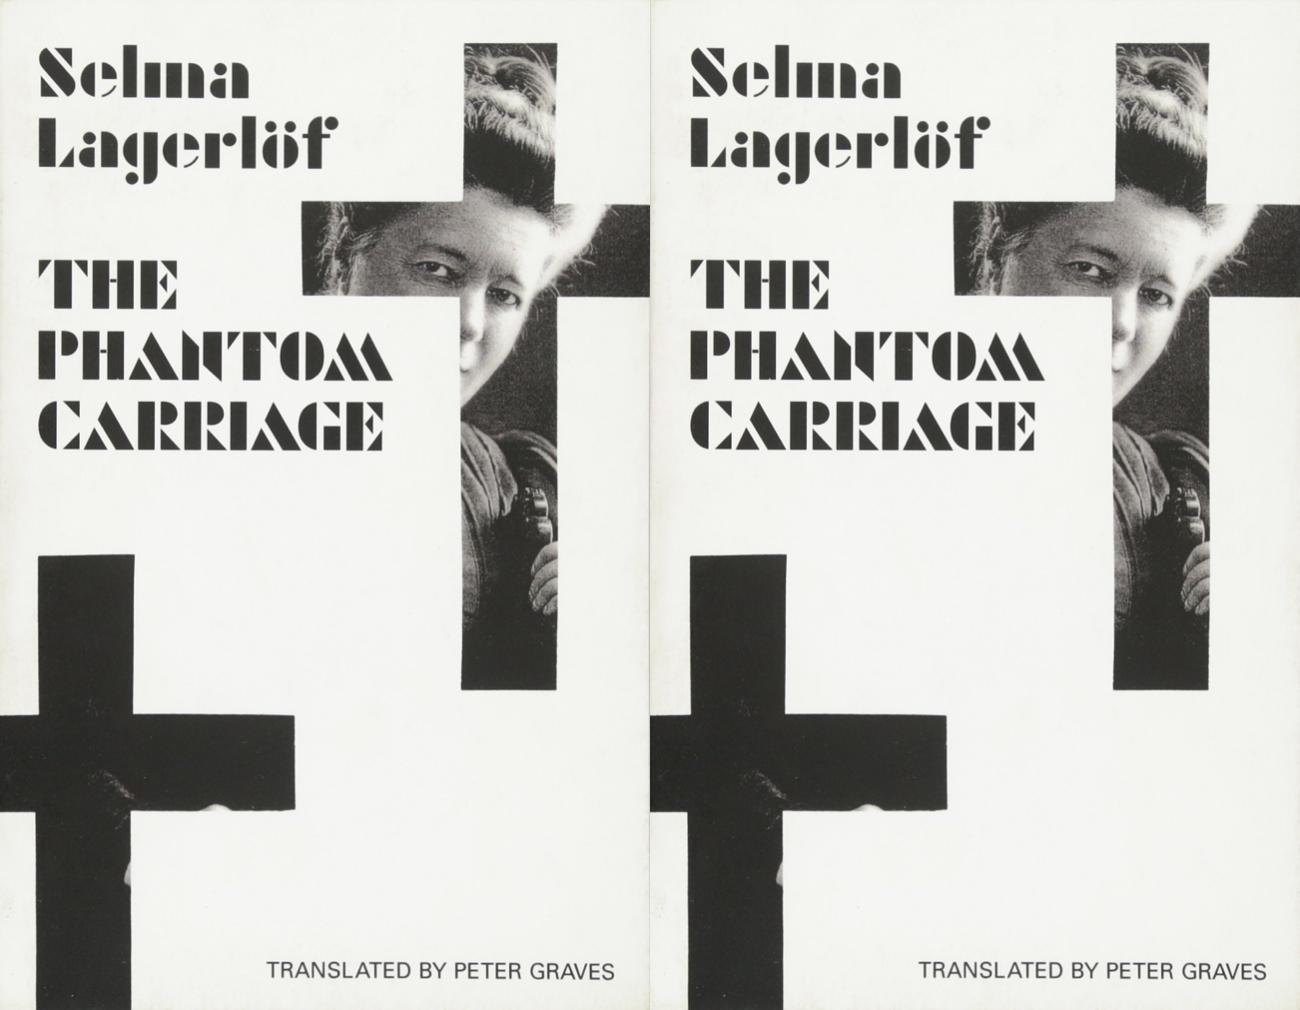 Cover art for The Phantom Carriage by Selma Lagerlof